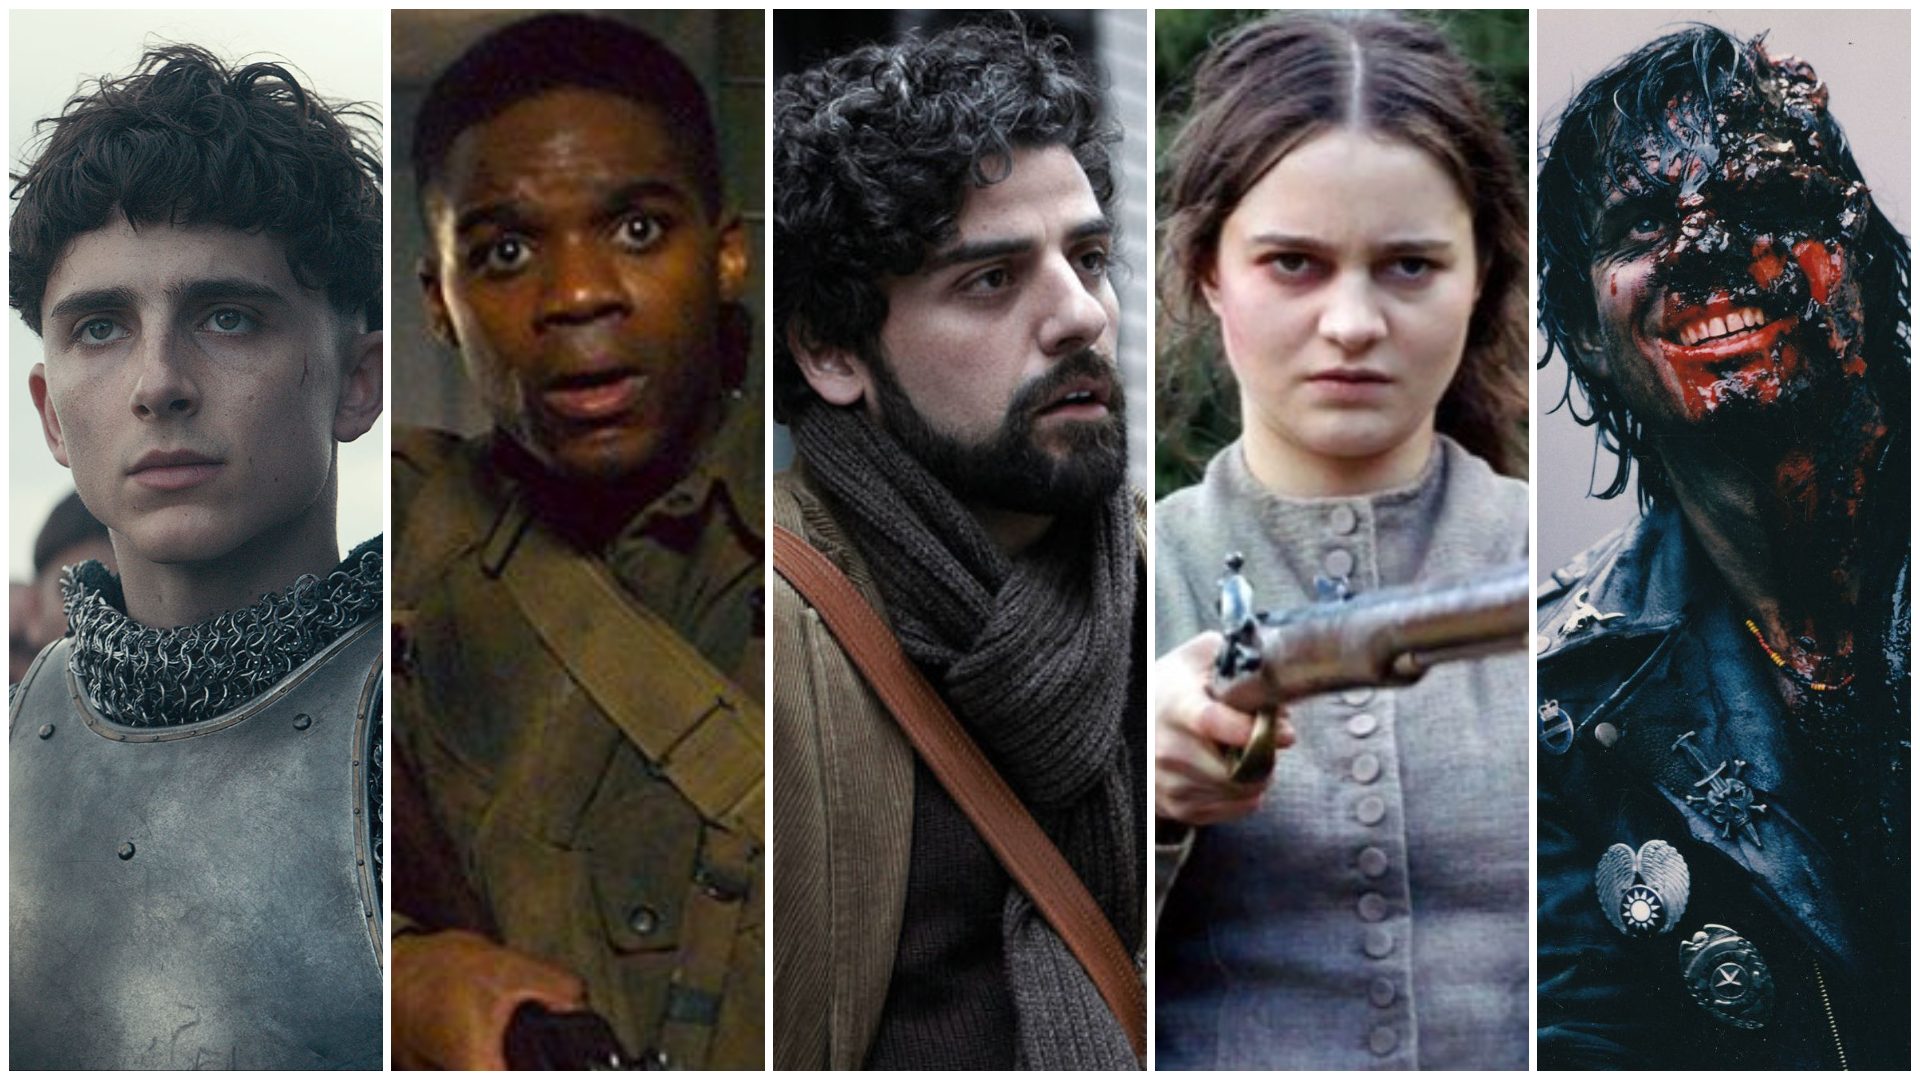 Now Stream This: 'Inside Llewyn Davis', 'Chinatown', 'The King', 'Demon Knight', 'Overlord', 'The Nightingale', and More